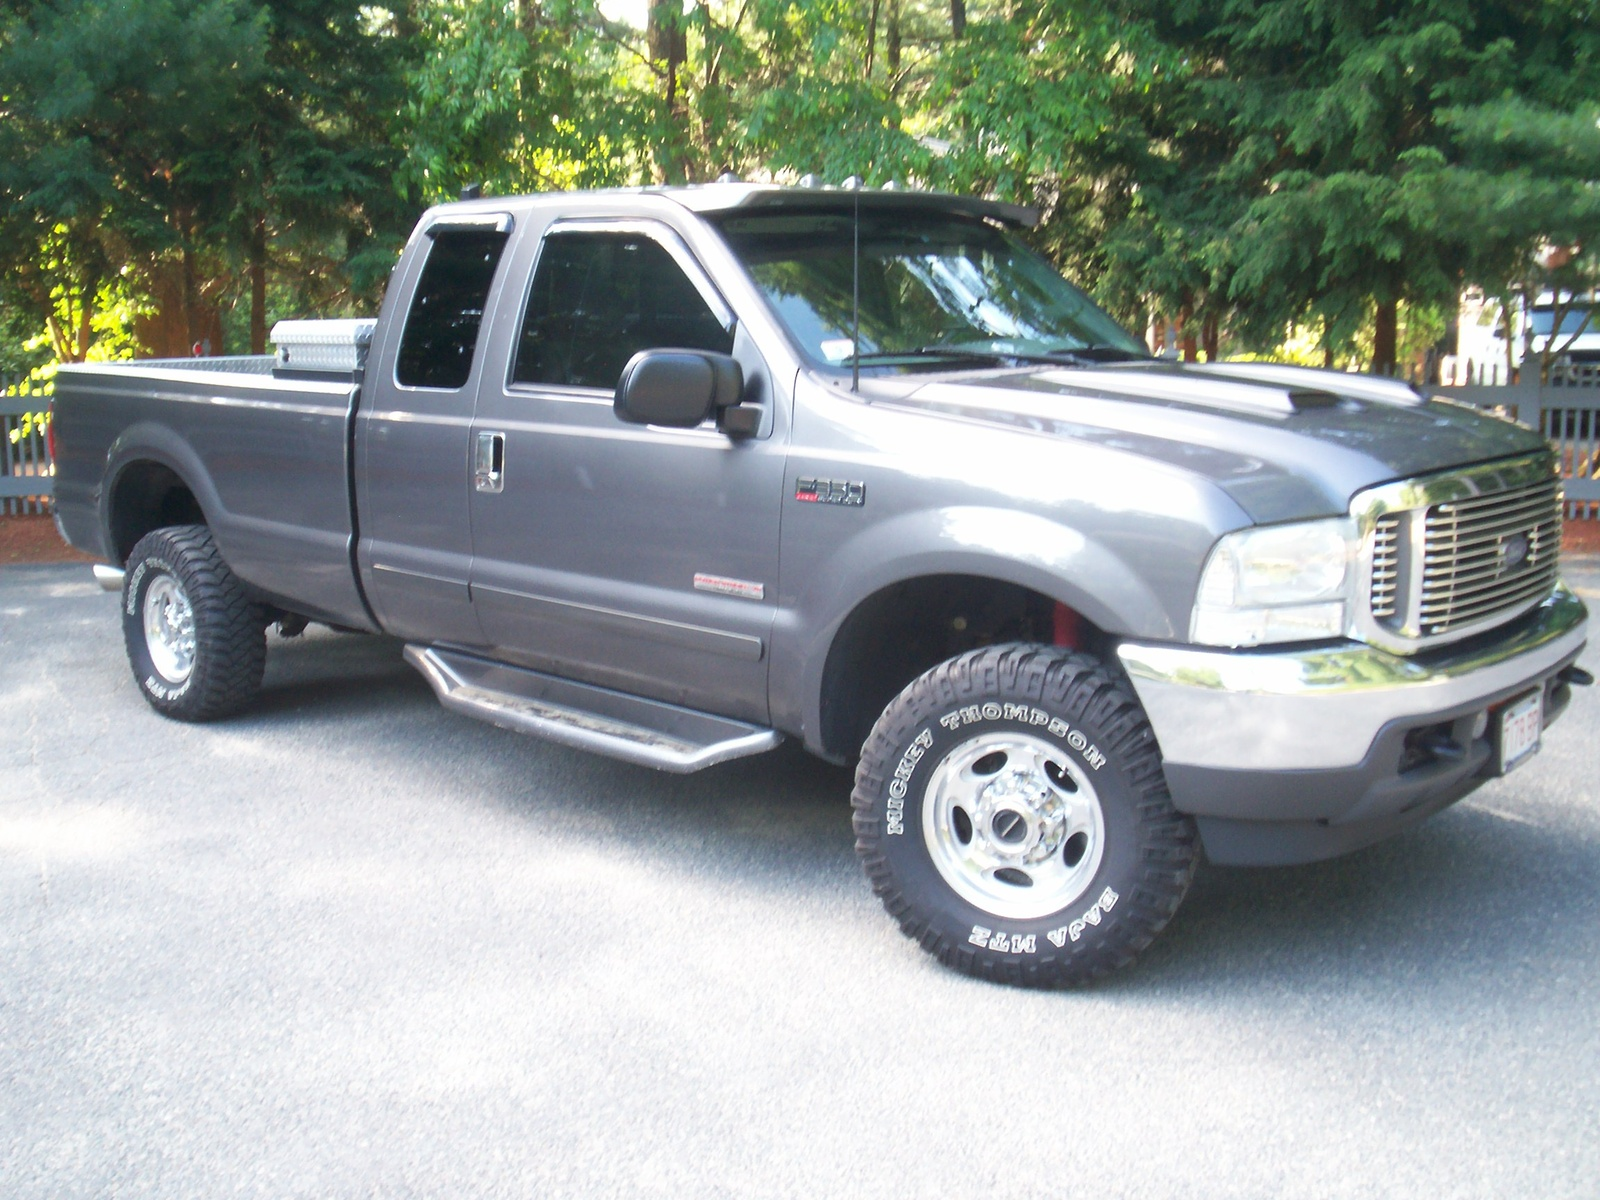 Ford F-350 Super Duty 2002 #12